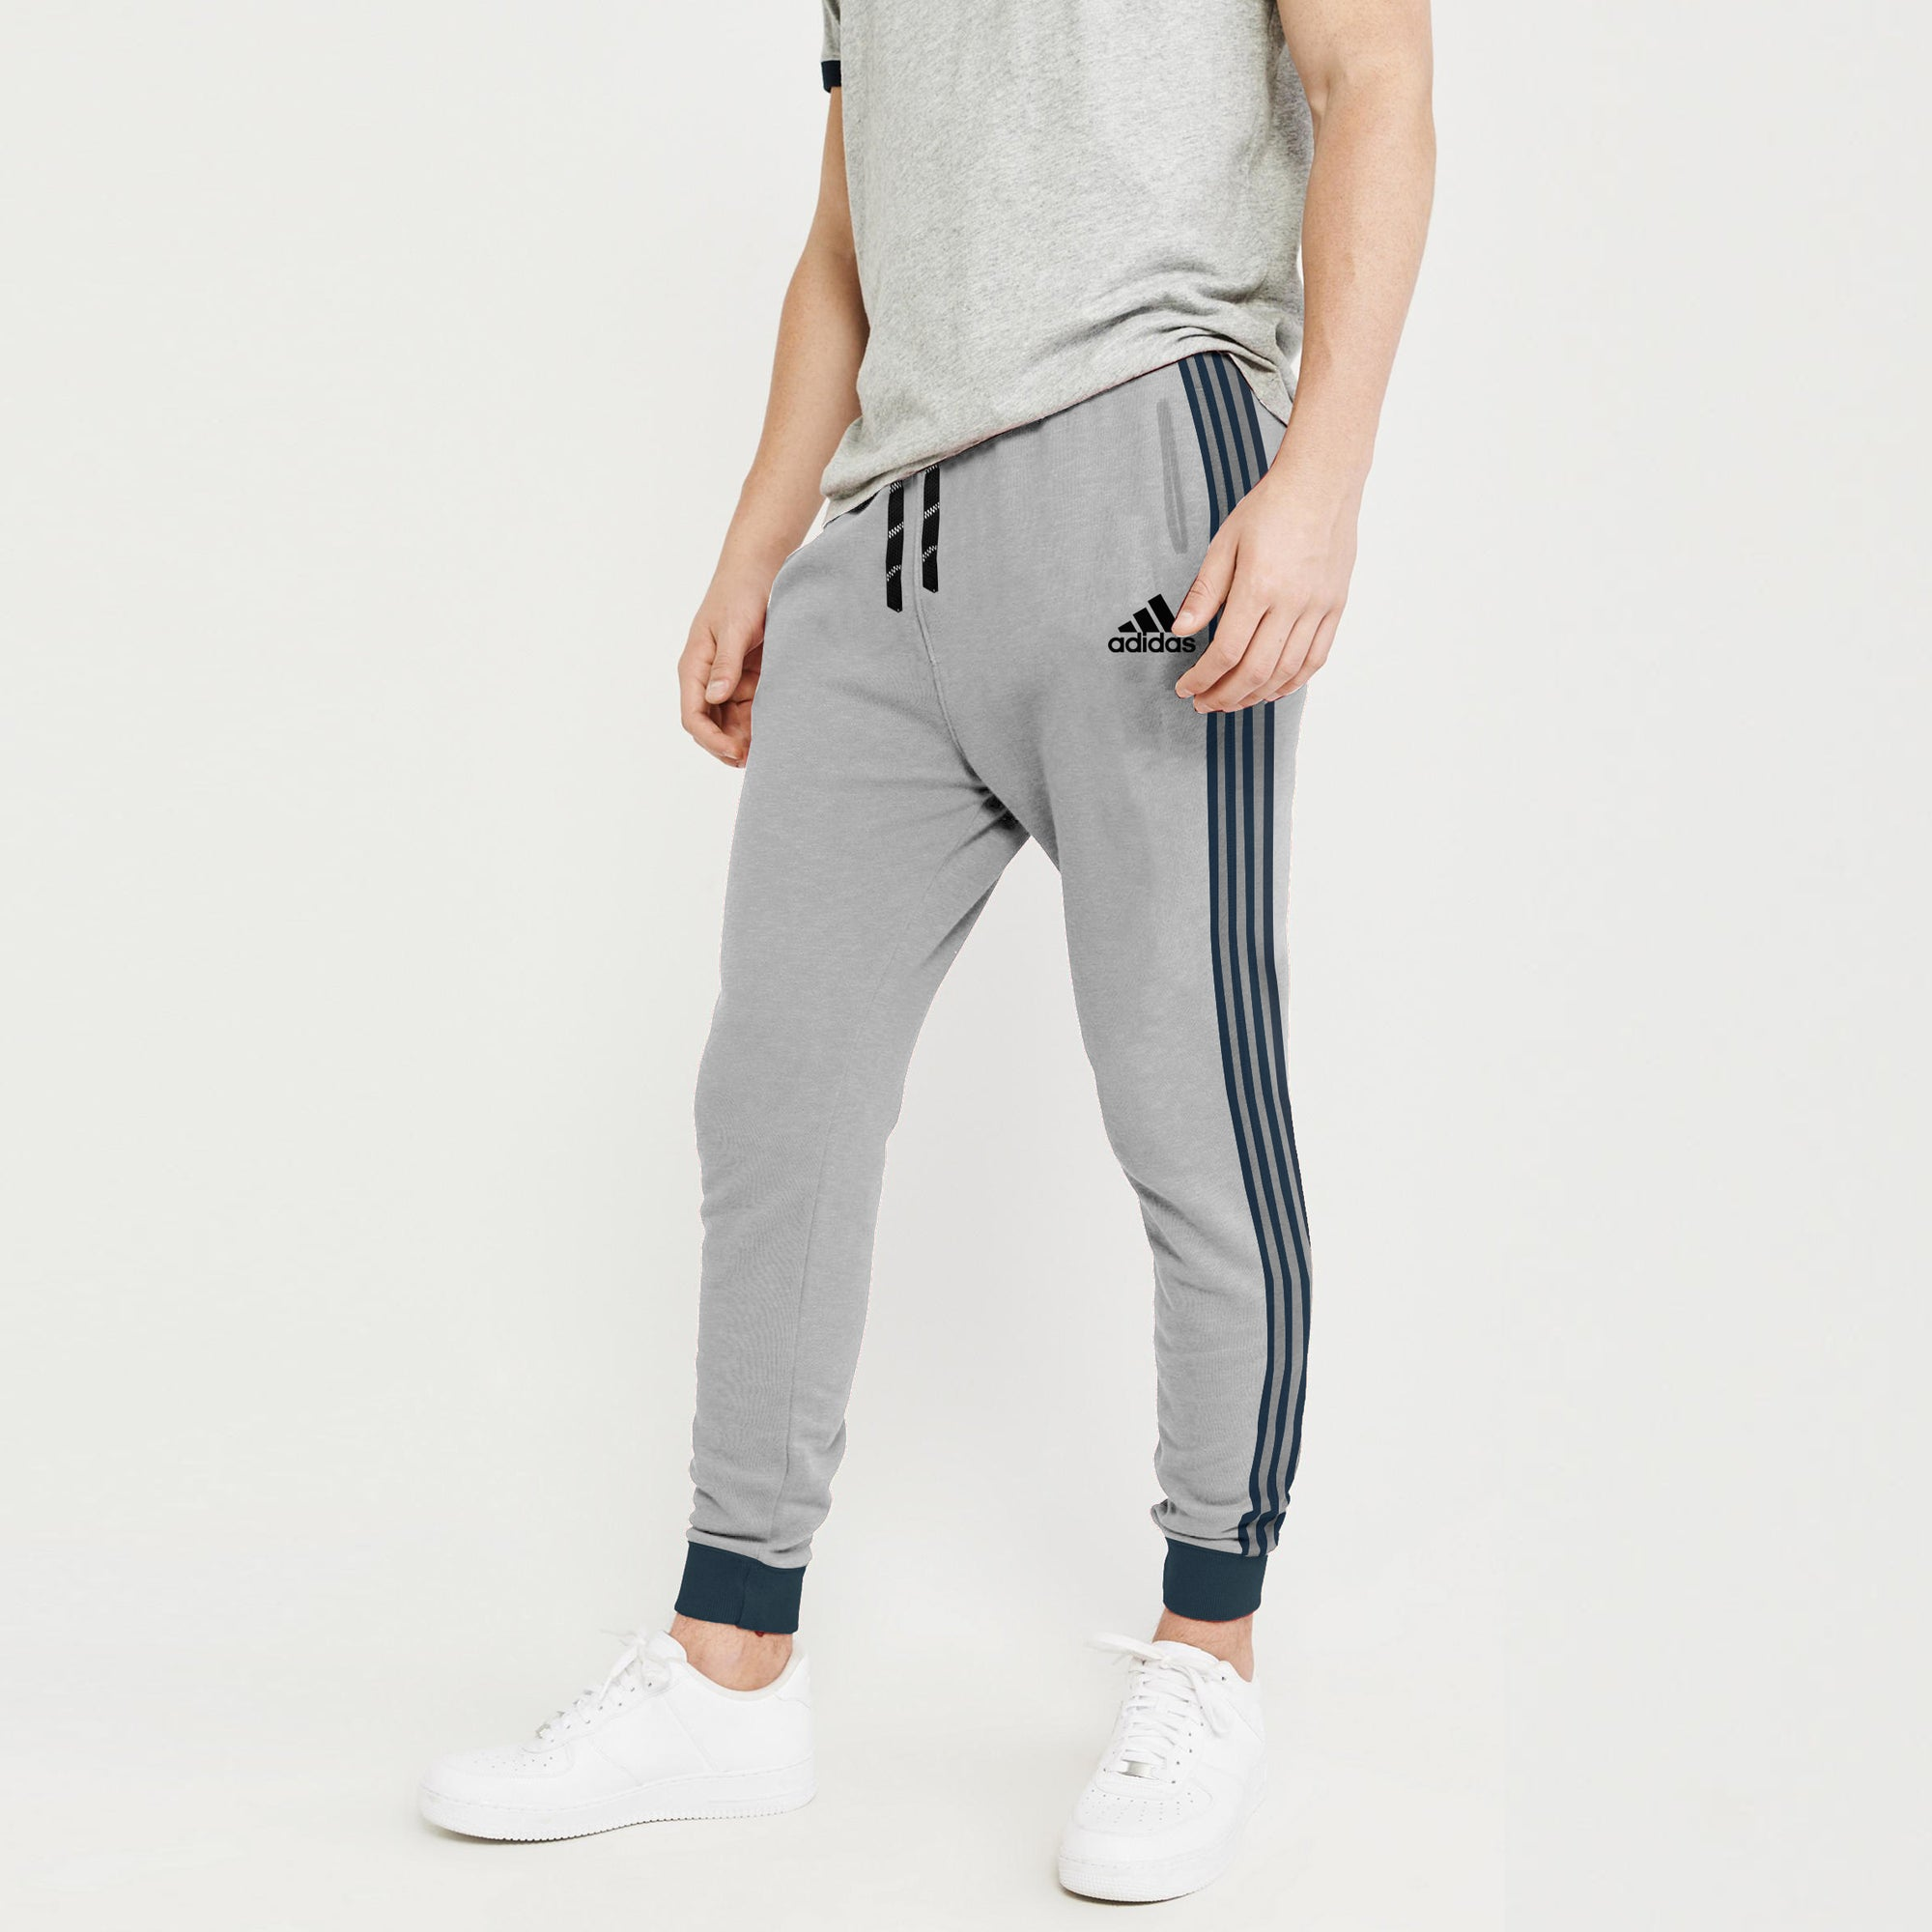 Adidas Single Jersey Slim Fit Jogger Trouser For Men-Light Grey With Navy Stripes-NA8792